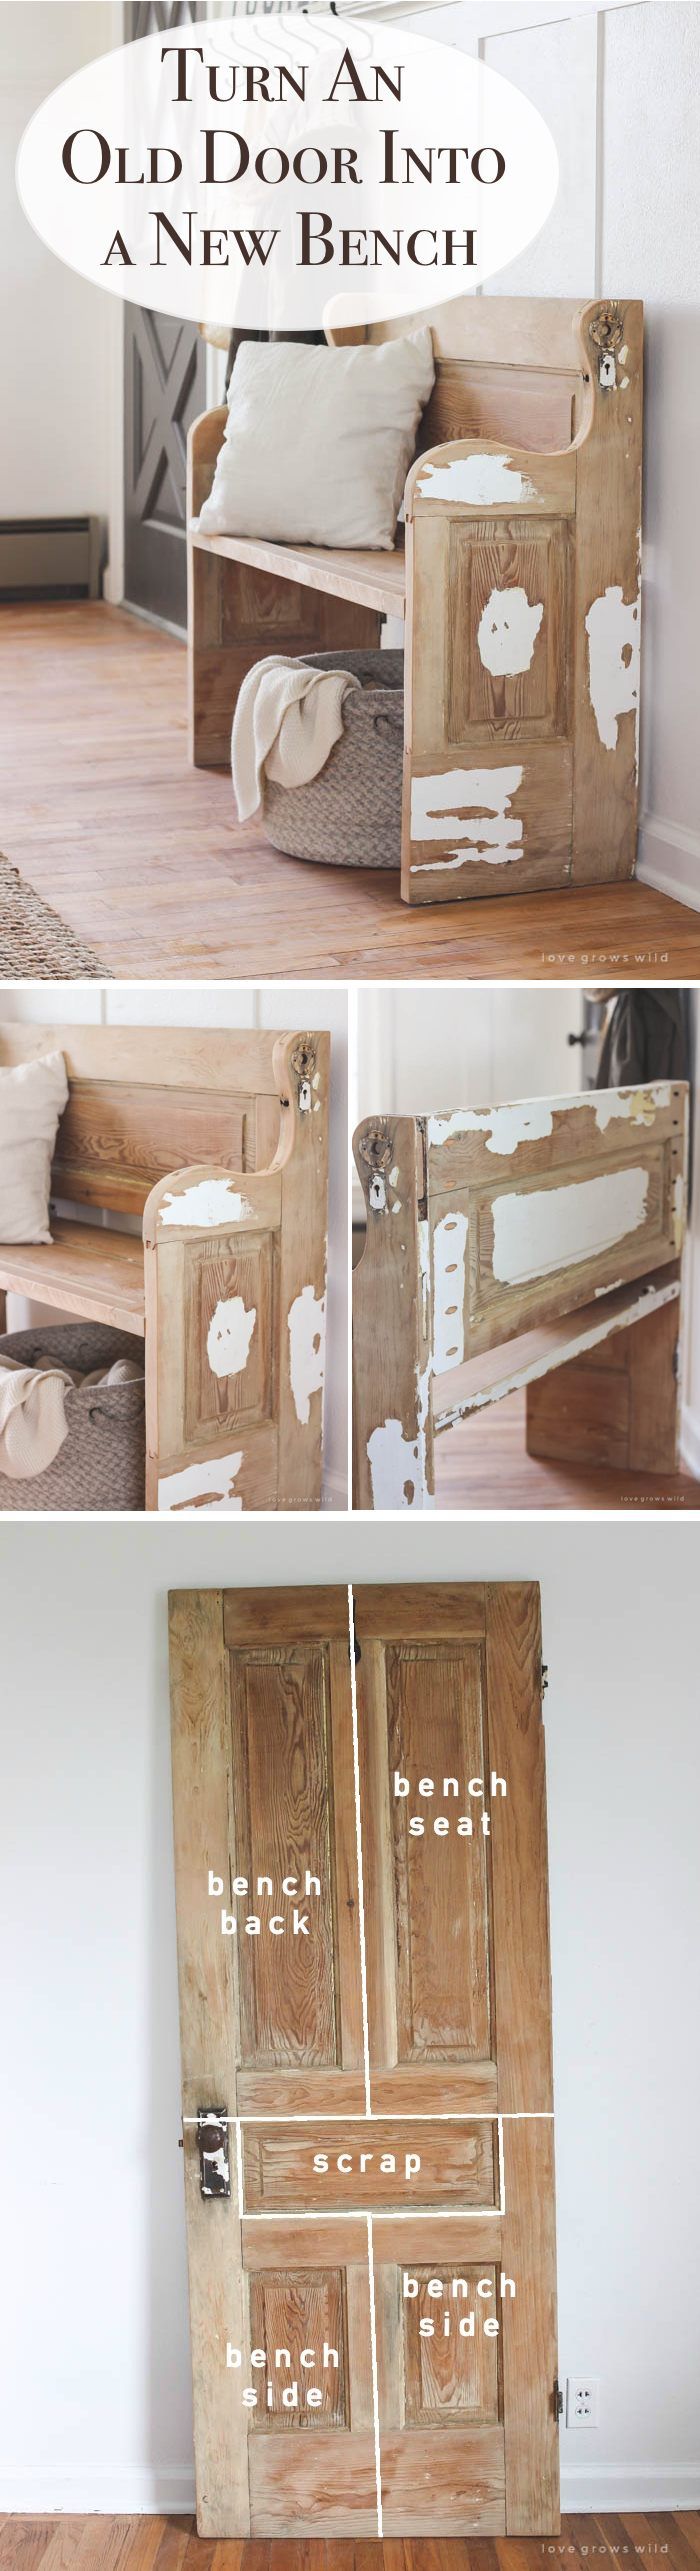 Phenomenal 19 Creative Diy Project Ideas Of How To Reuse Old Doors Interior Design Ideas Oxytryabchikinfo